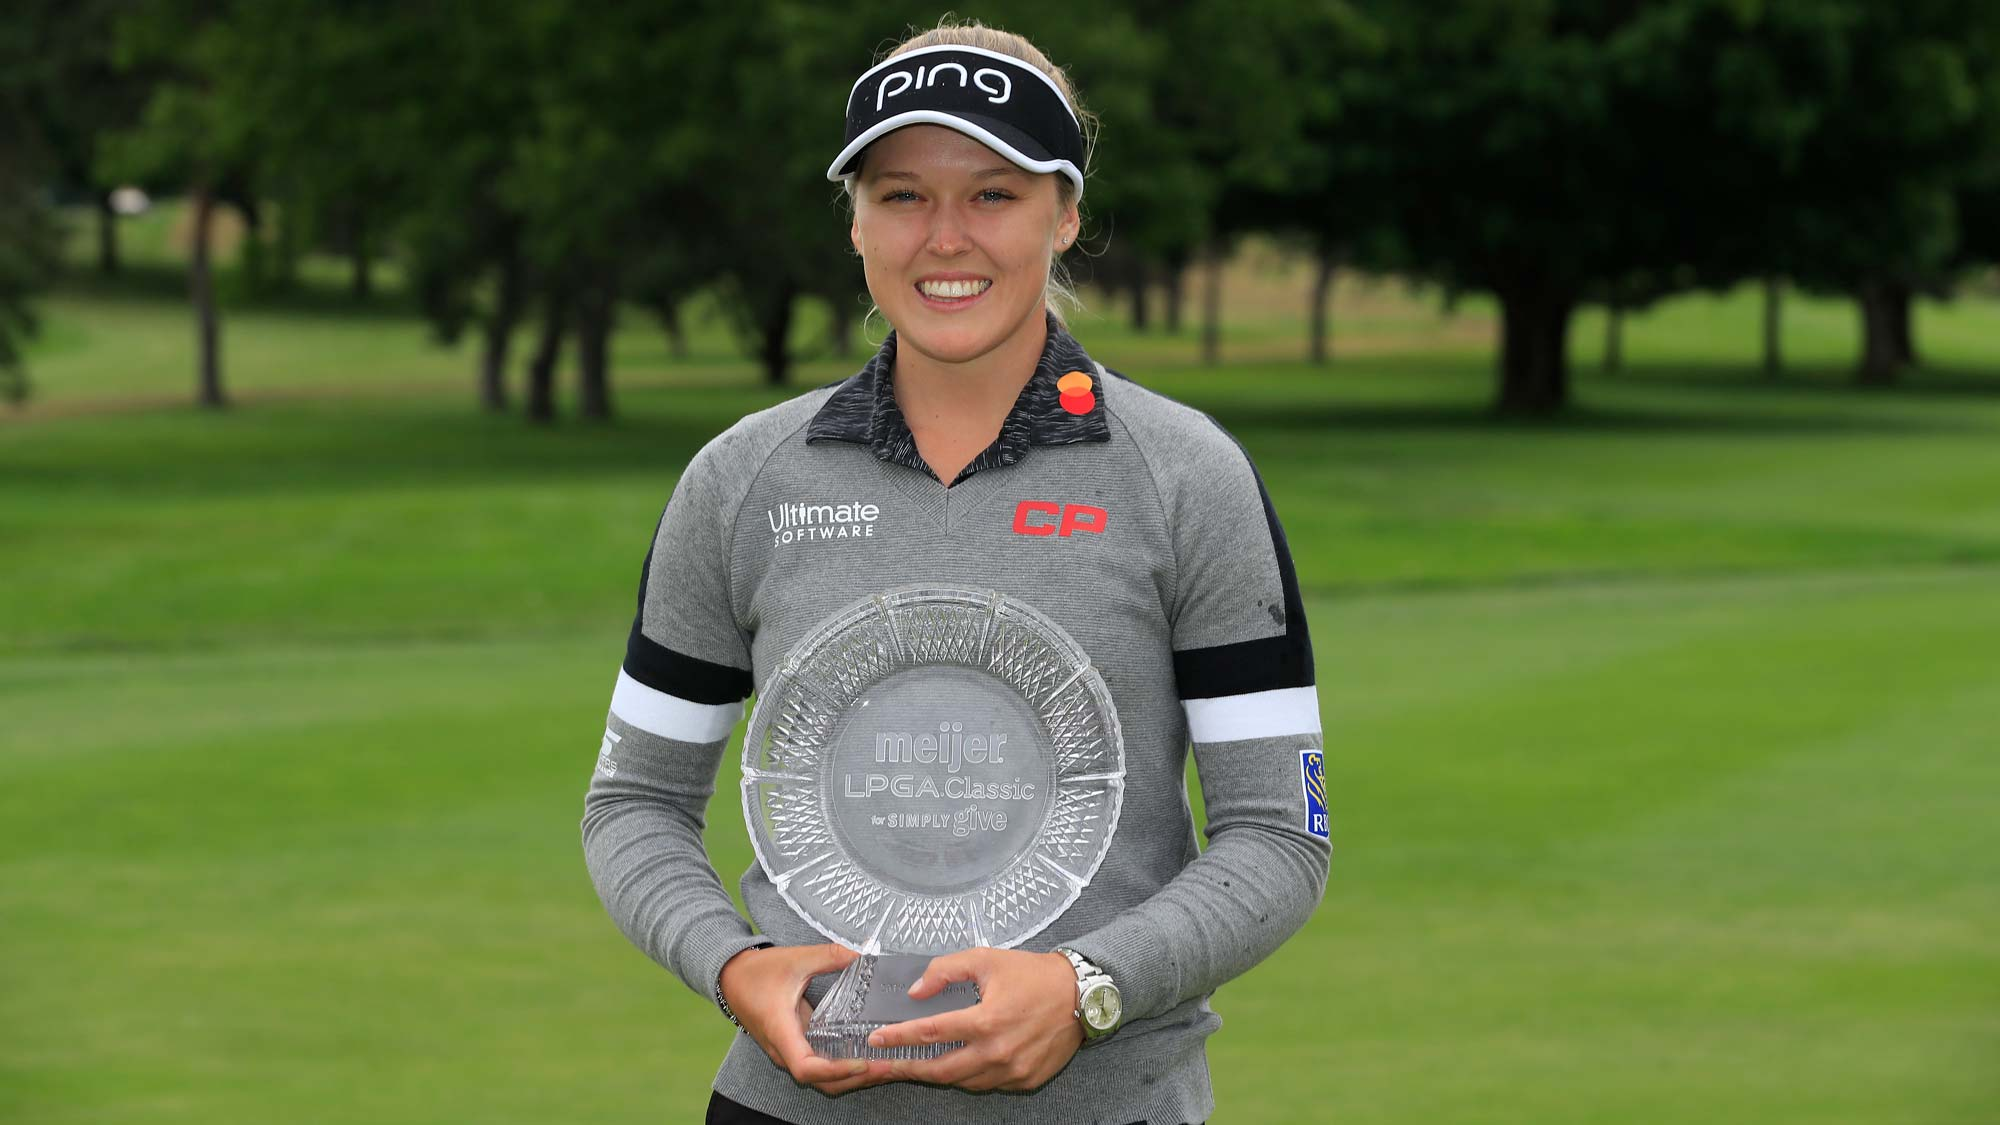 Brooke Henderson has her #BagsPacked for the 2020 Diamond Resorts Tournament of Champions after her victory at the 2019 Meijer LPGA Classic for Simply Give